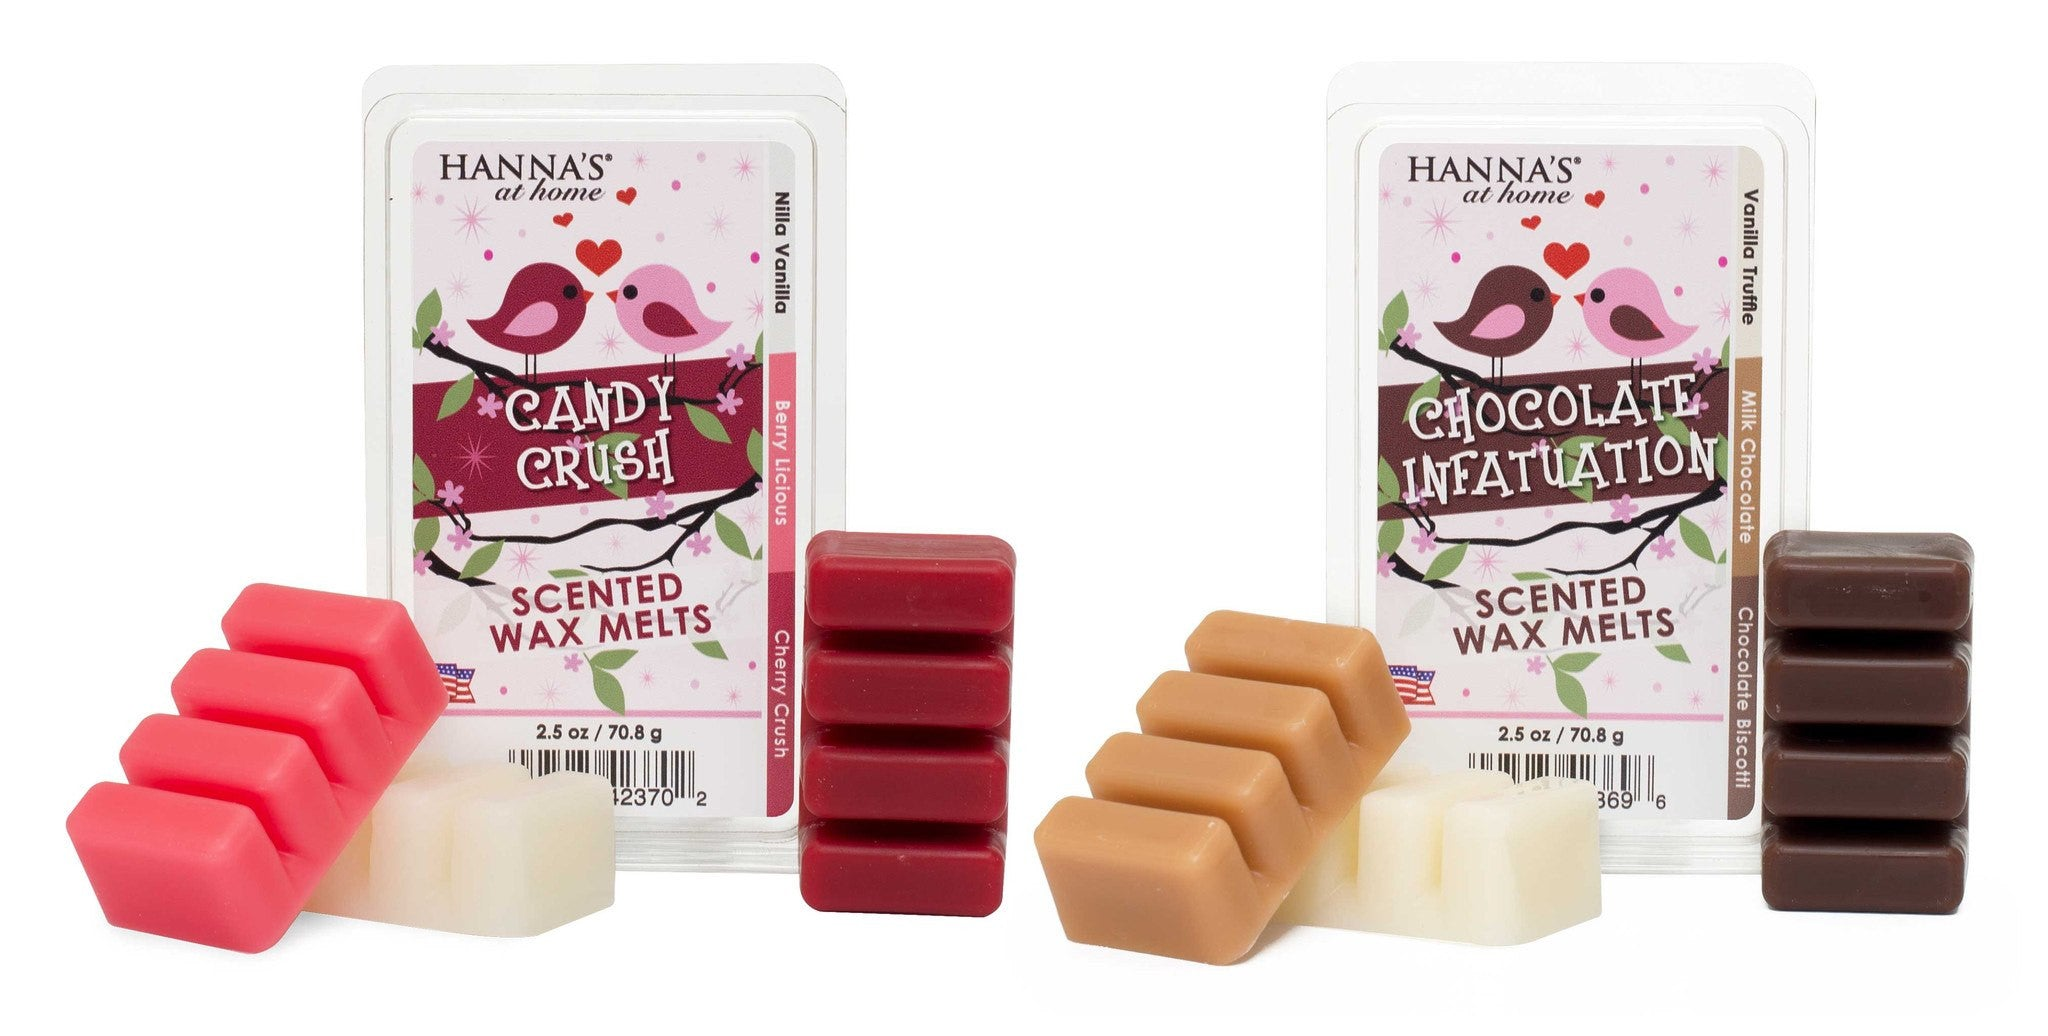 Valentine's Triple Pour Candy Crush Scented Wax Melts Melts Candlemart.com $ 0.99